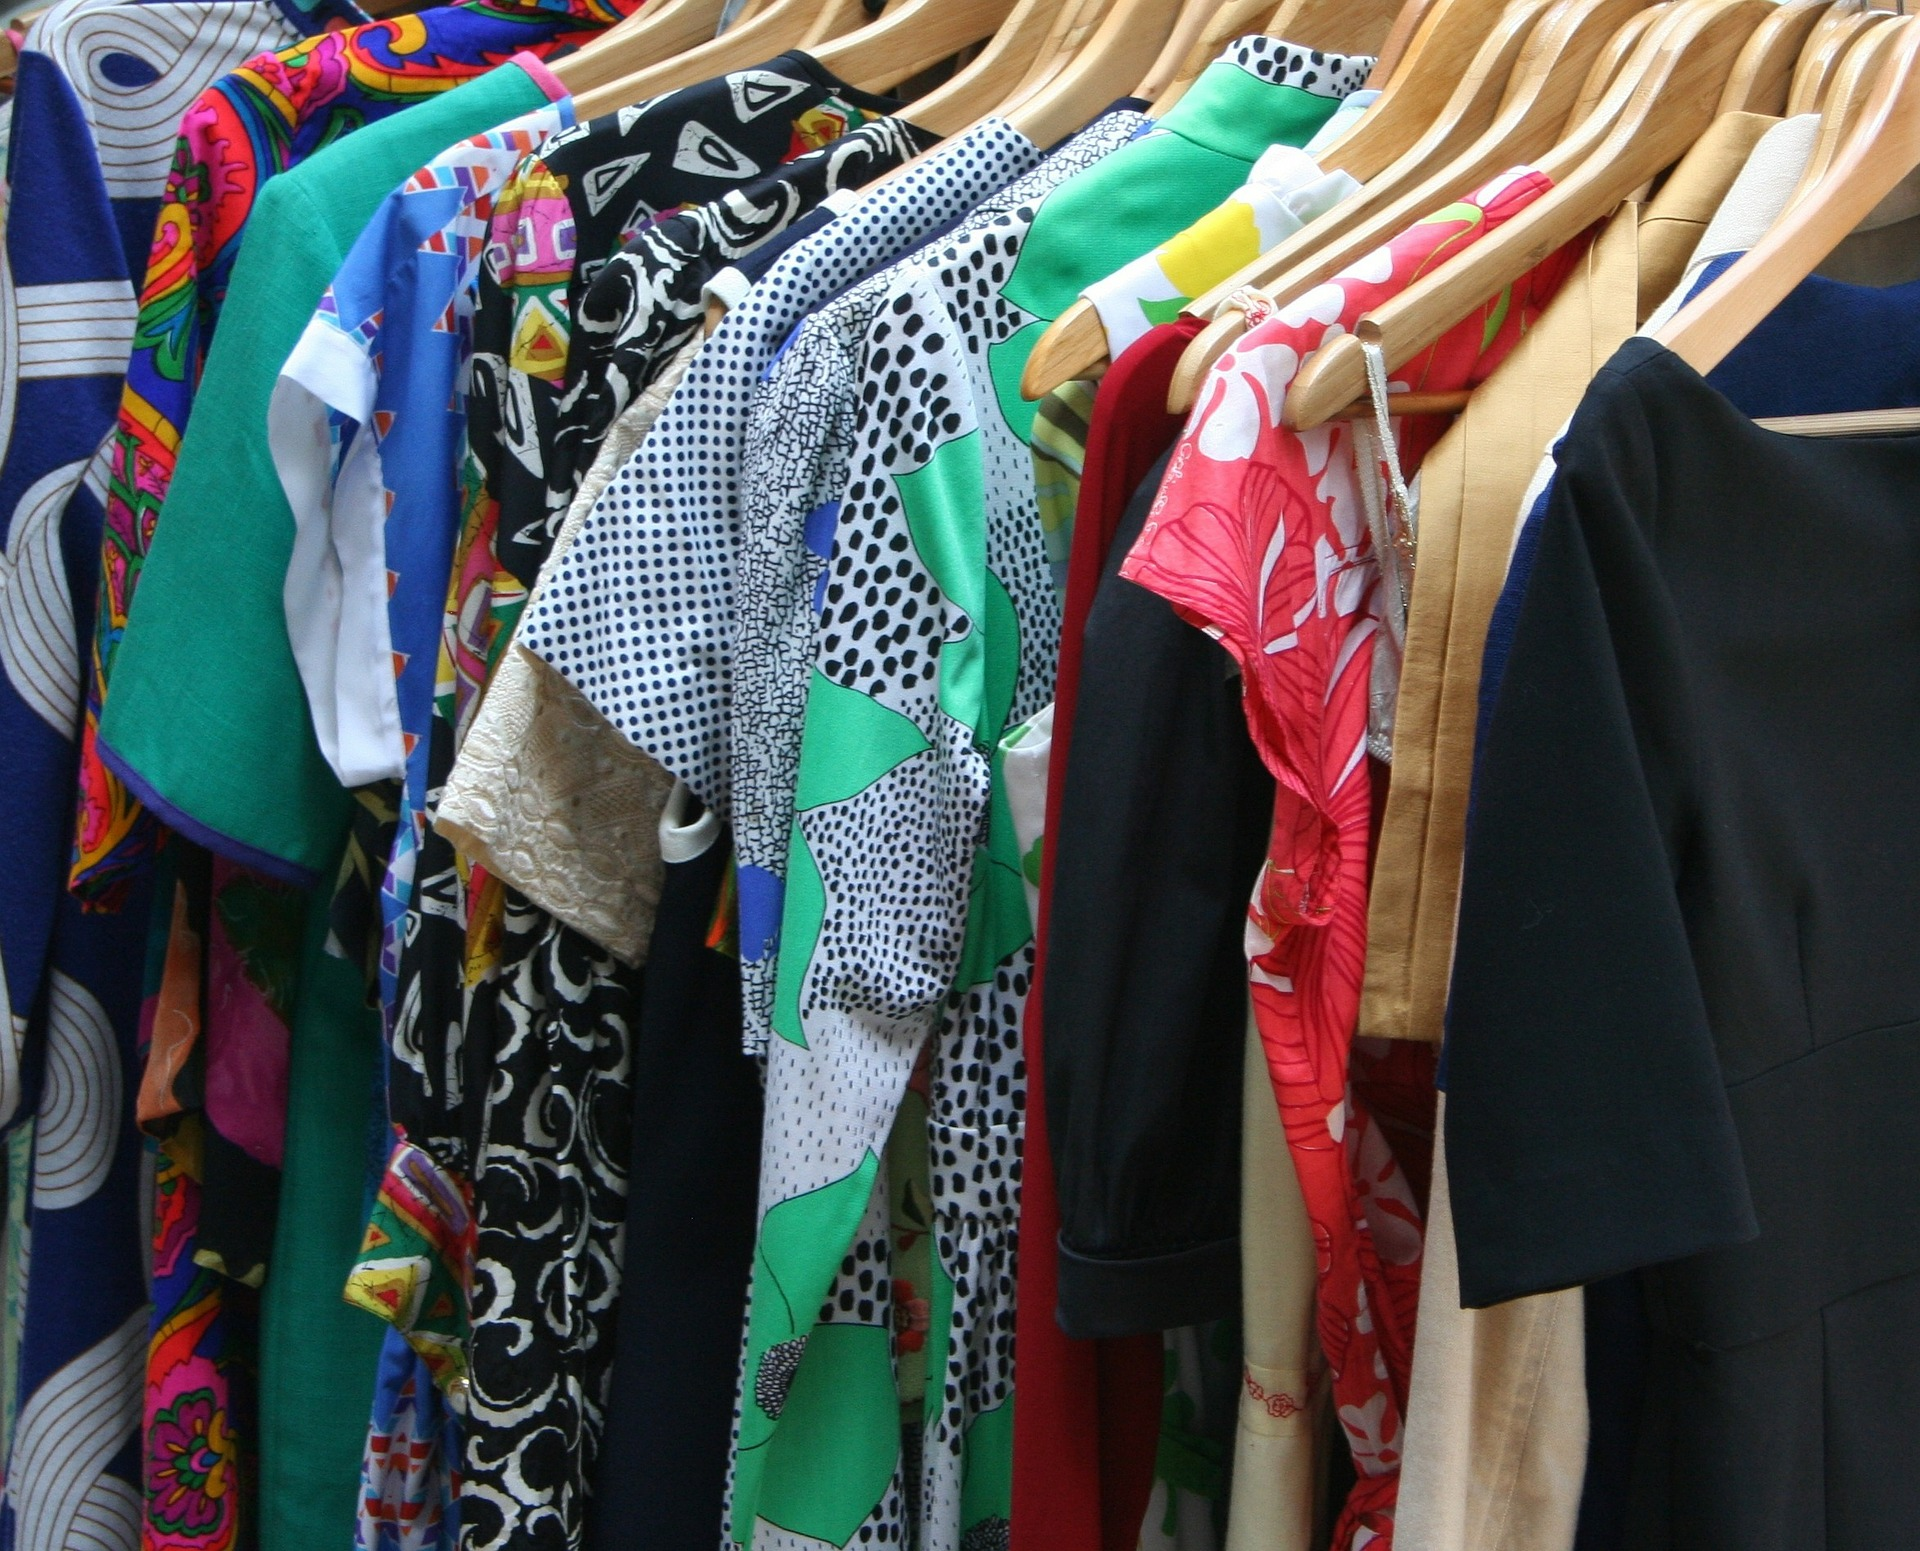 A clothing swap is shopping at your friends' closets